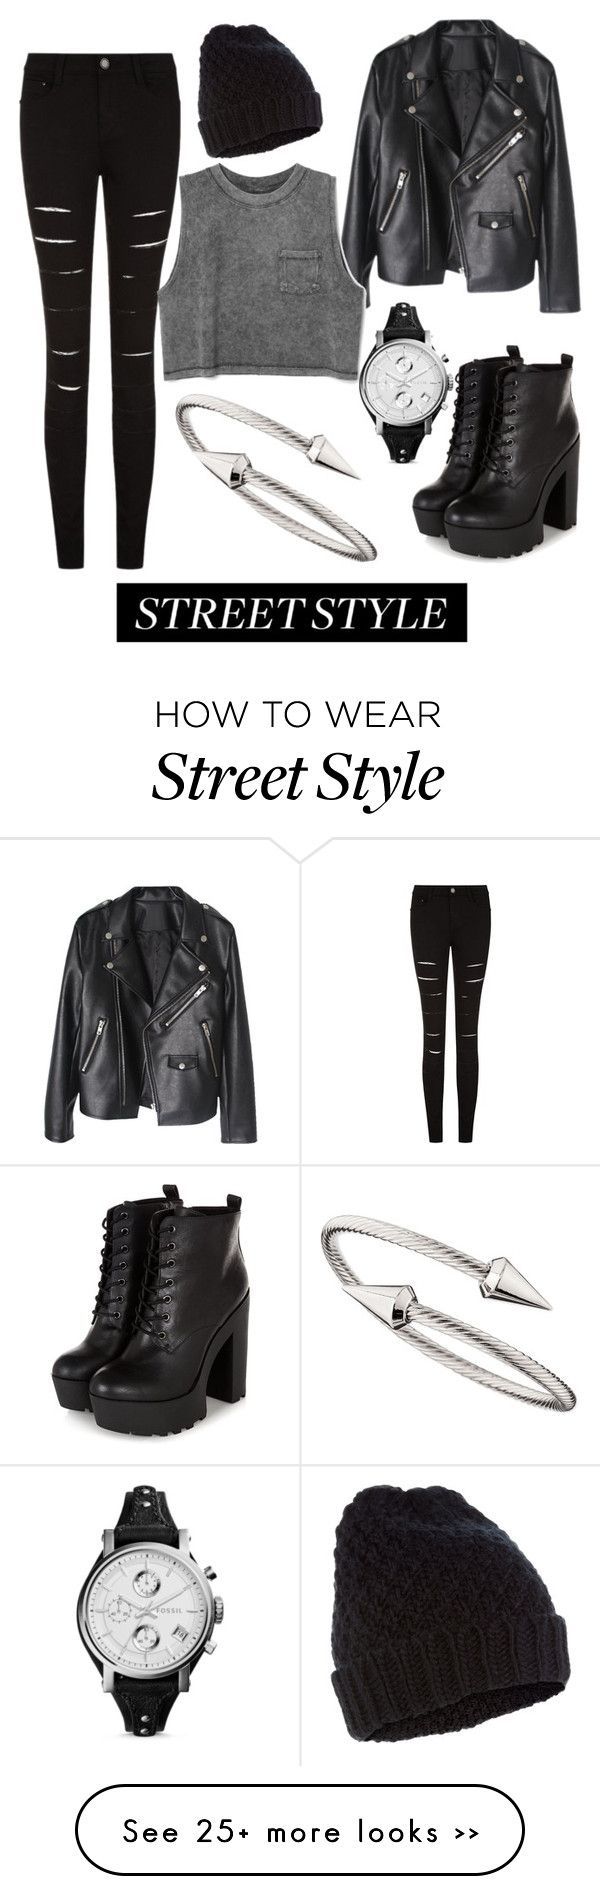 """Dark Shadows"" by screen4ger on Polyvore featuring Jules Smith, Accessorize and FOSSIL"